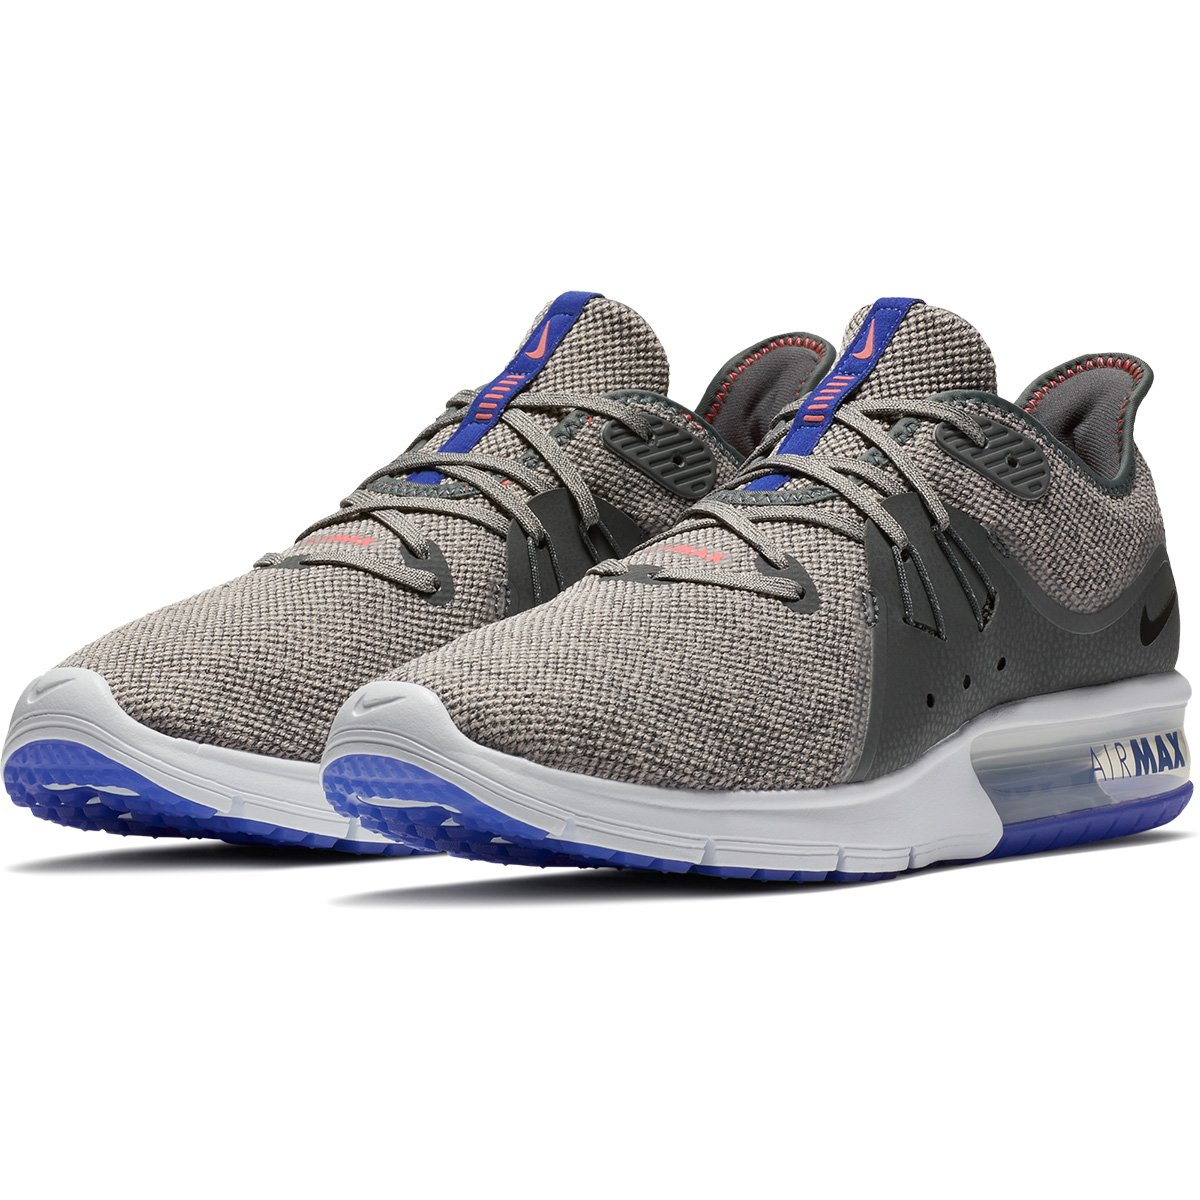 99742cc341ae1 ... aliexpress tênis nike air max sequent 3 masculino 33eec 419c4 ...